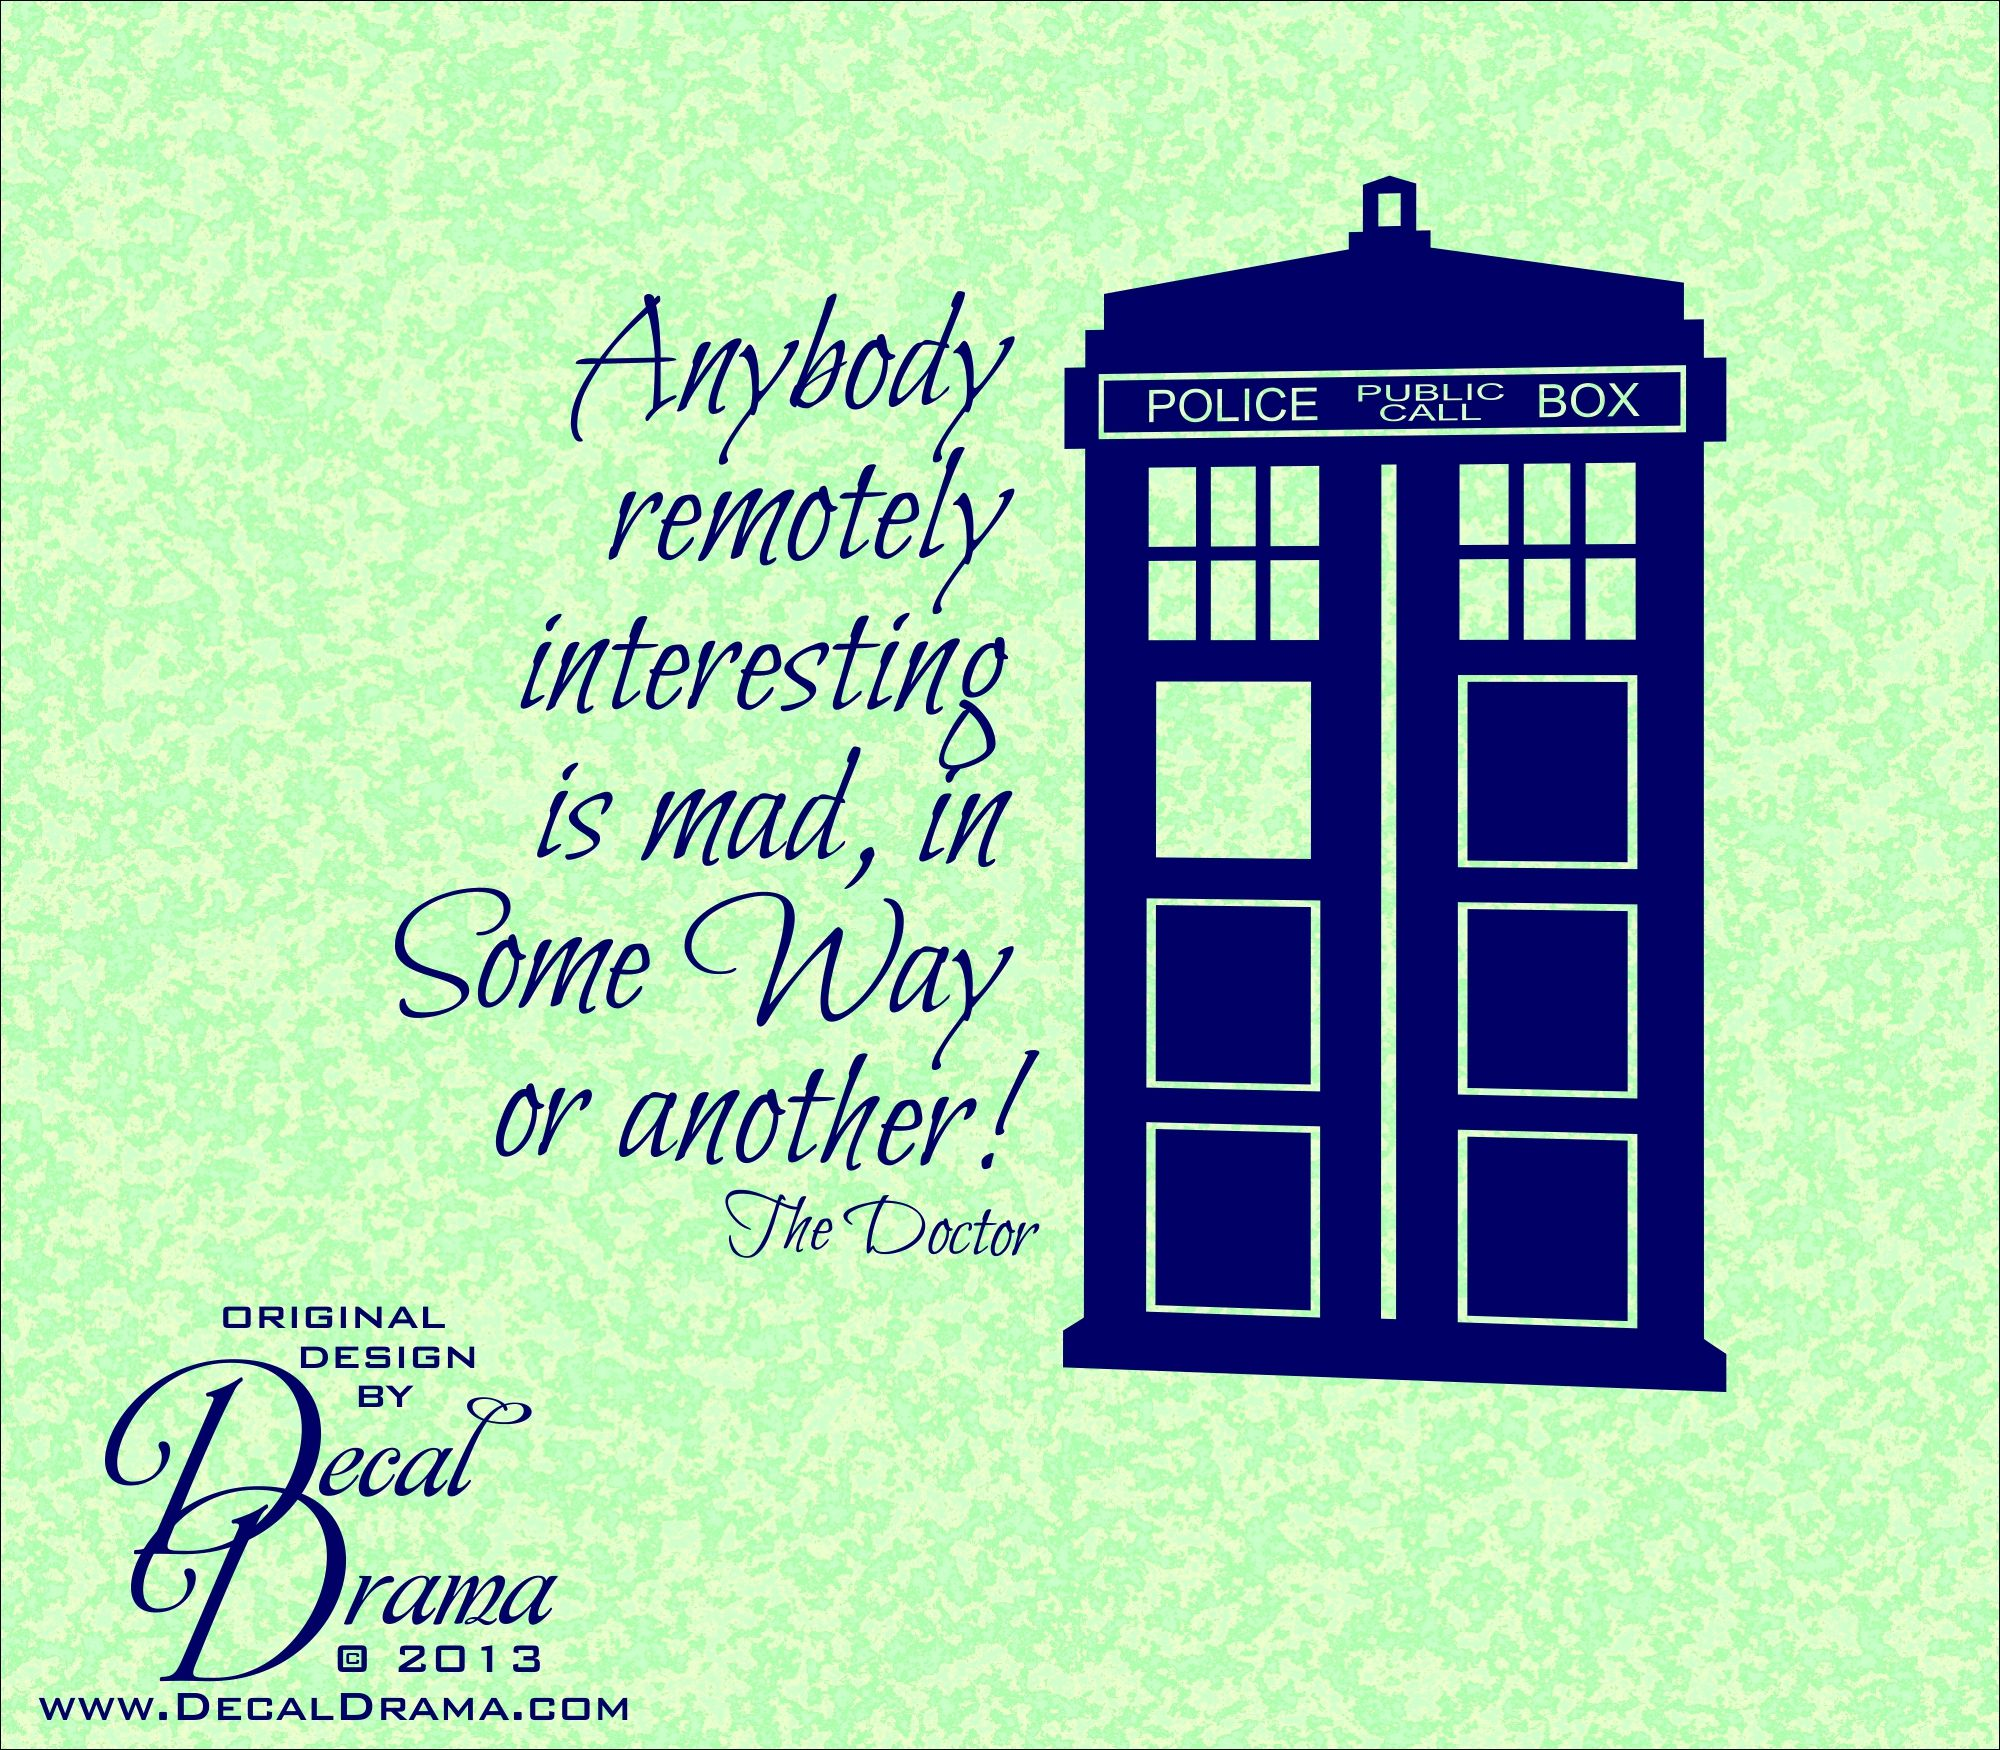 Dr who wall decals remotely interesting is mad in some way dr who wall decals remotely interesting is mad in some way amipublicfo Choice Image